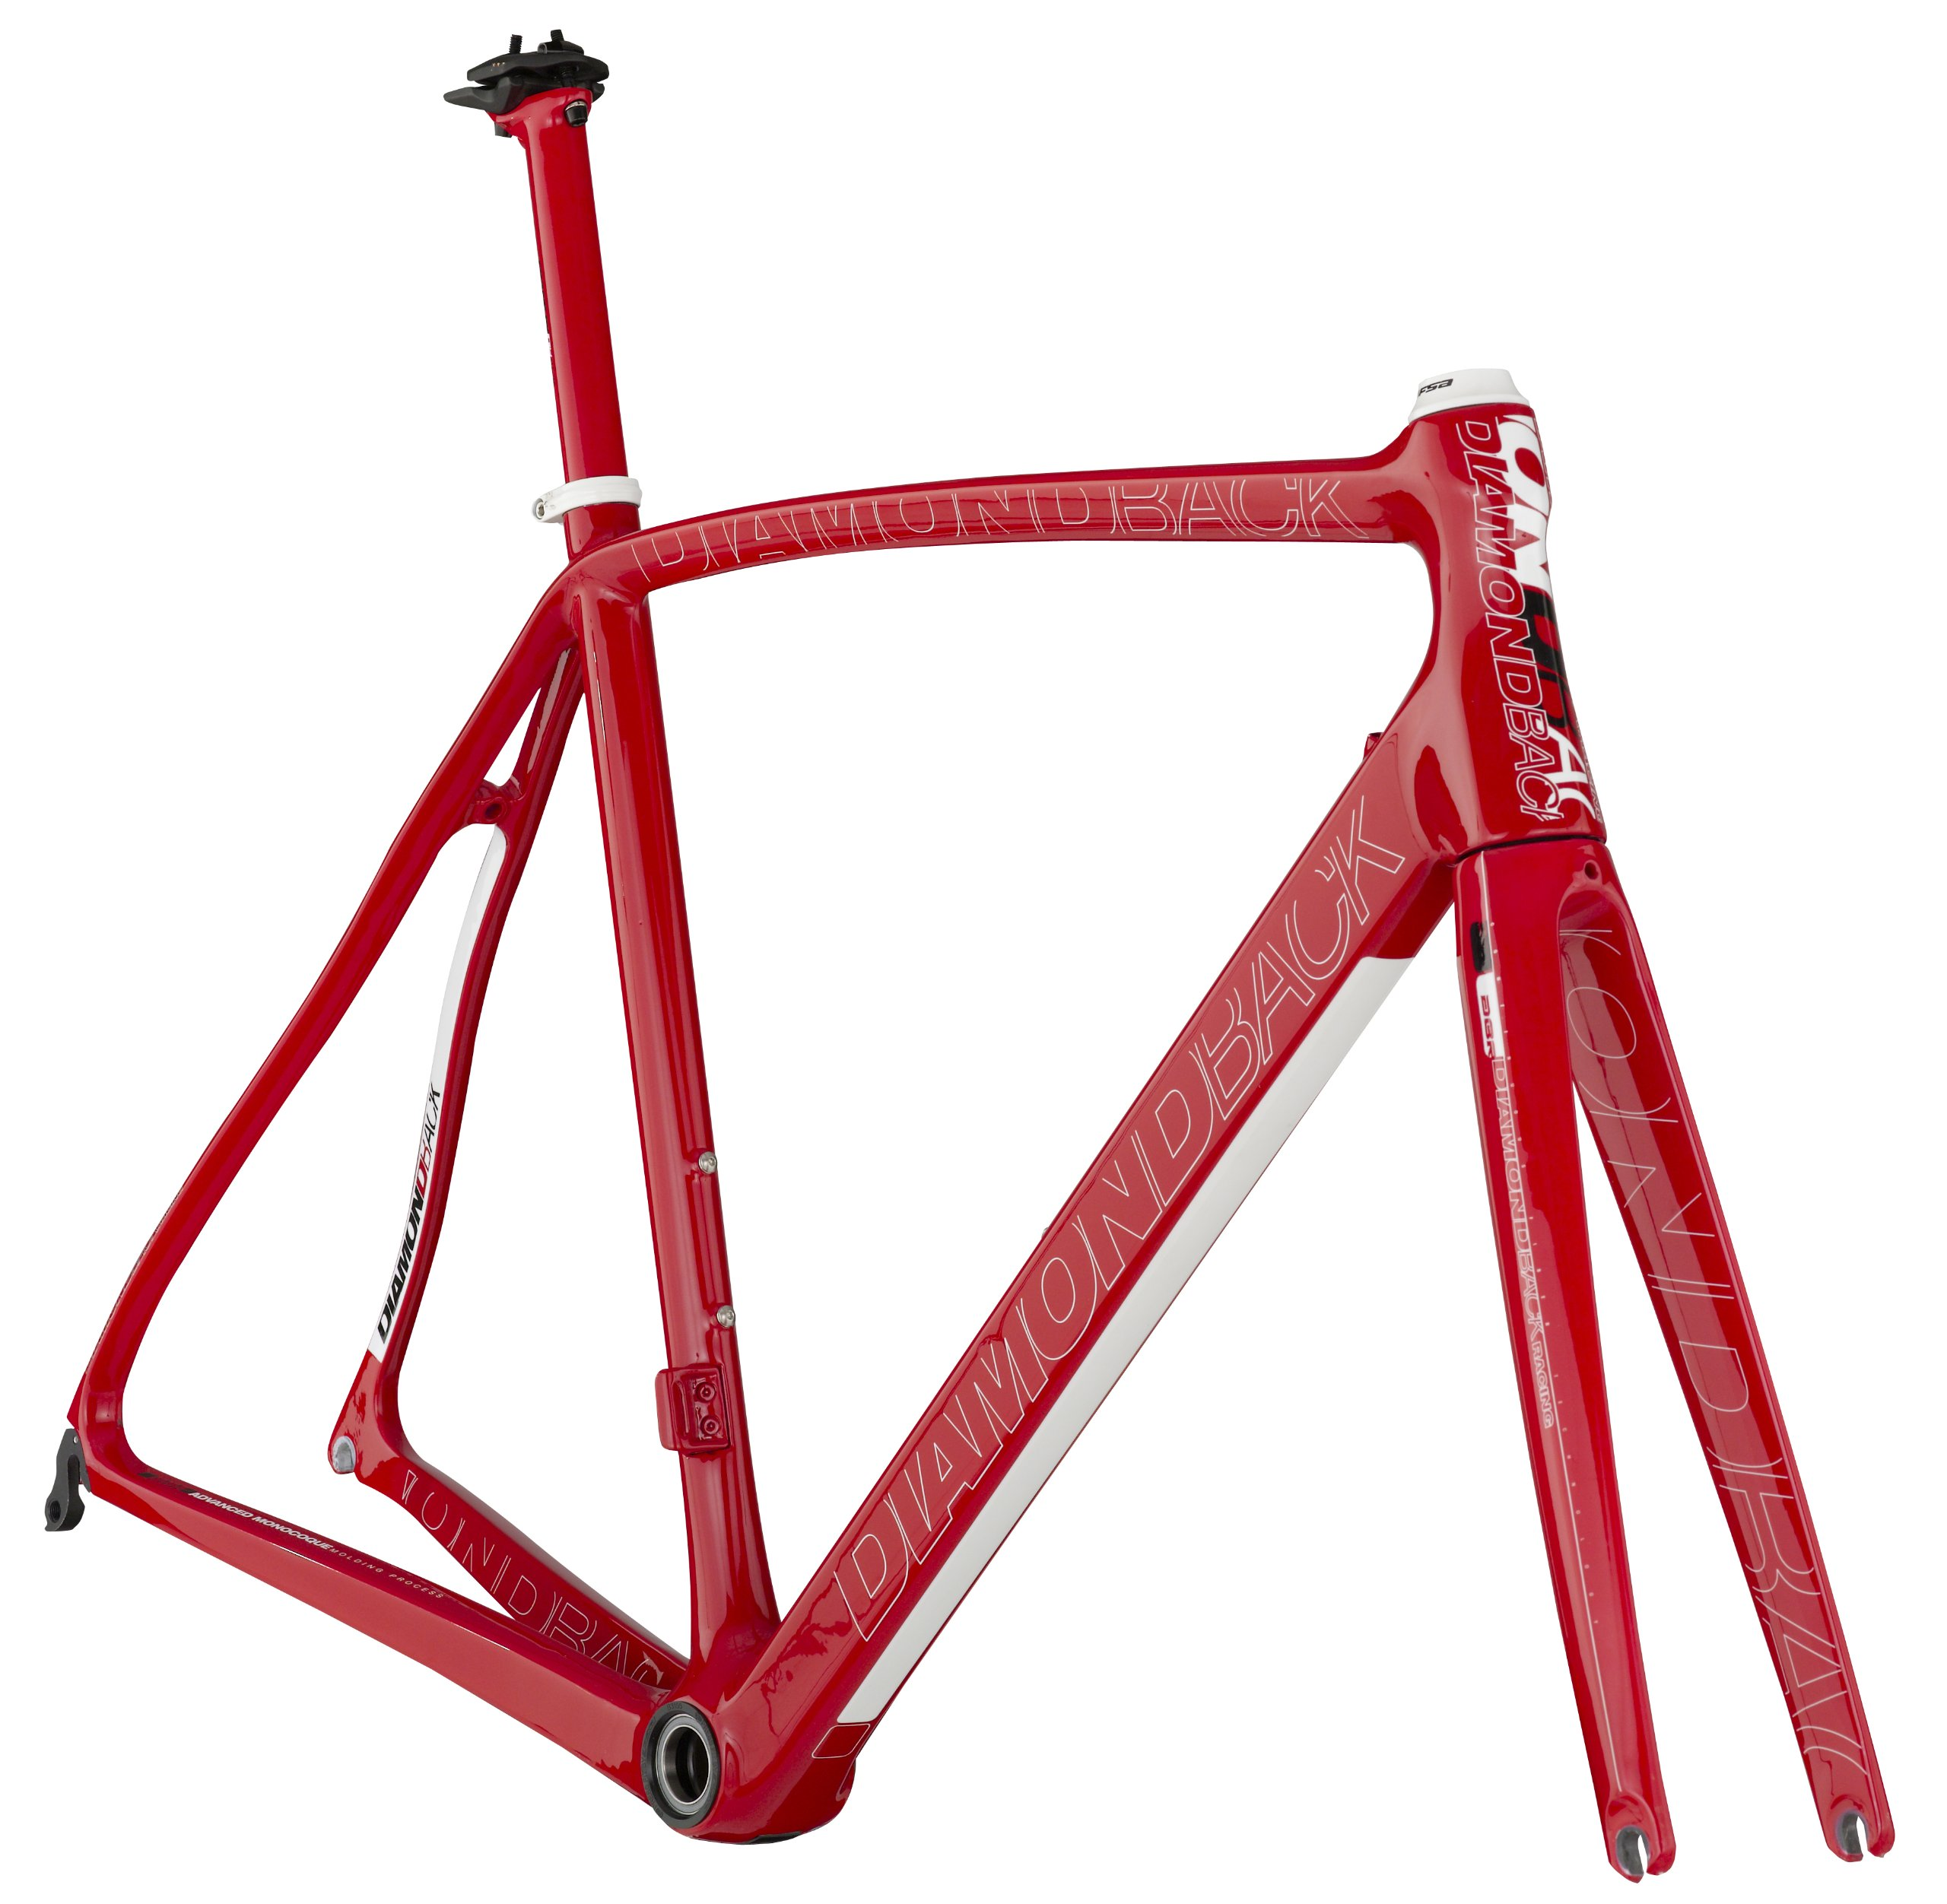 Diamondback 2013 Podium 7 Carbon SL Bike Frameset, Red